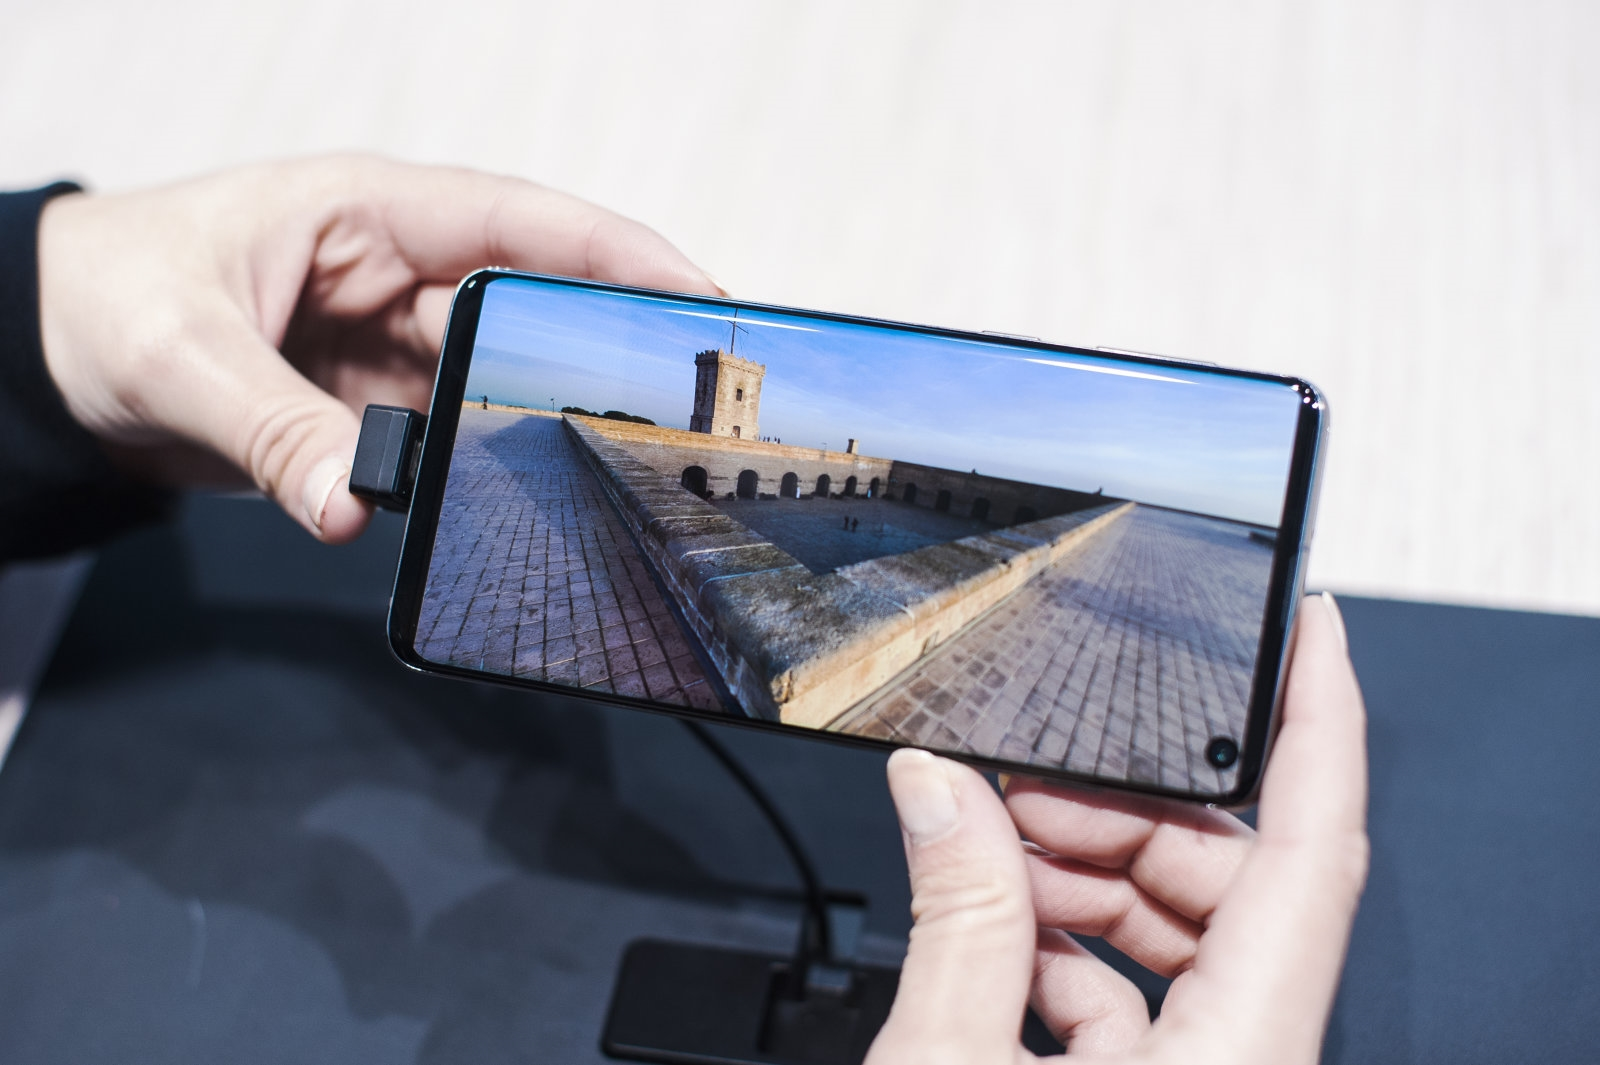 Samsung imagines full-screen phone with a camera hidden under the display | DeviceDaily.com